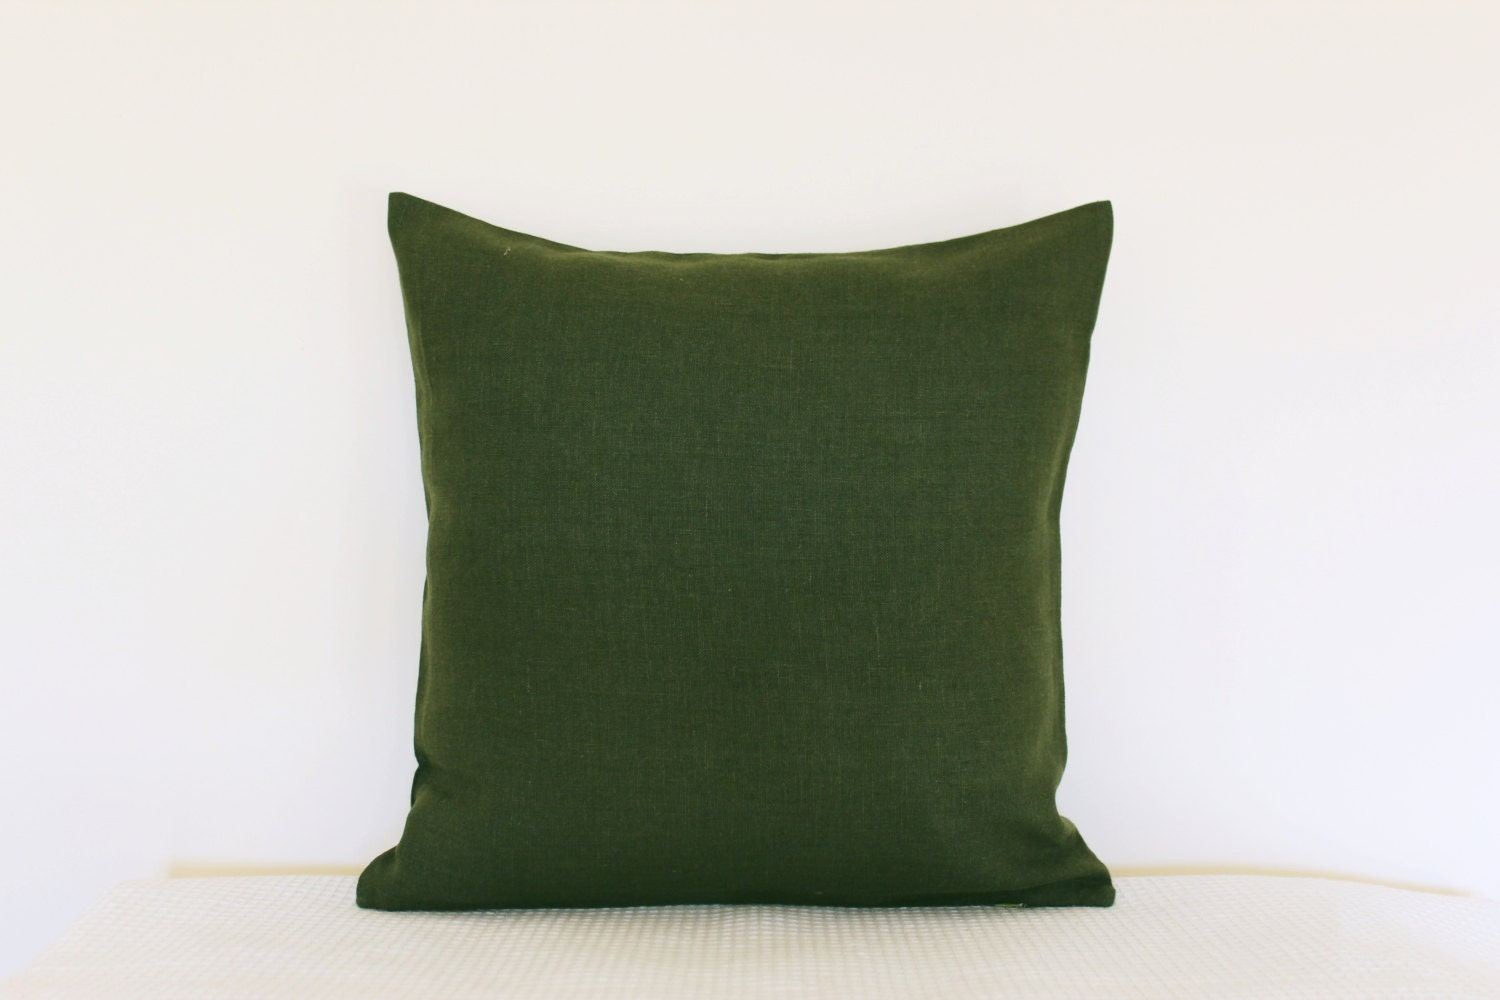 Decorative moss green color linen pillow cover. Modern Spring